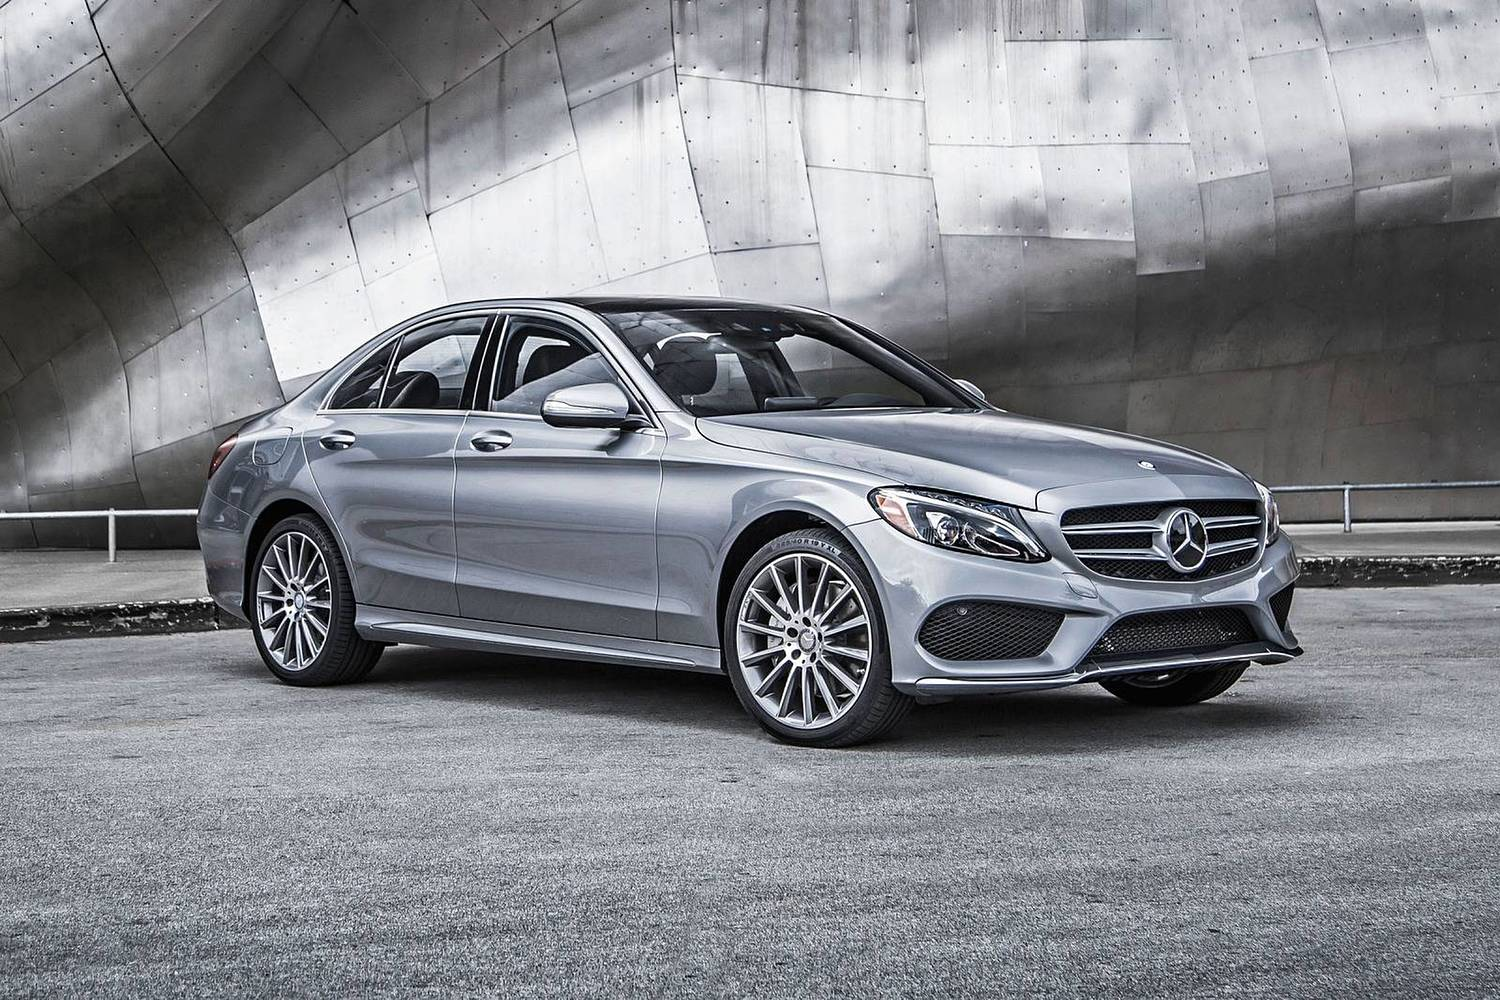 2018 Mercedes-Benz C-Class C 300 4MATIC Sedan Exterior Shown